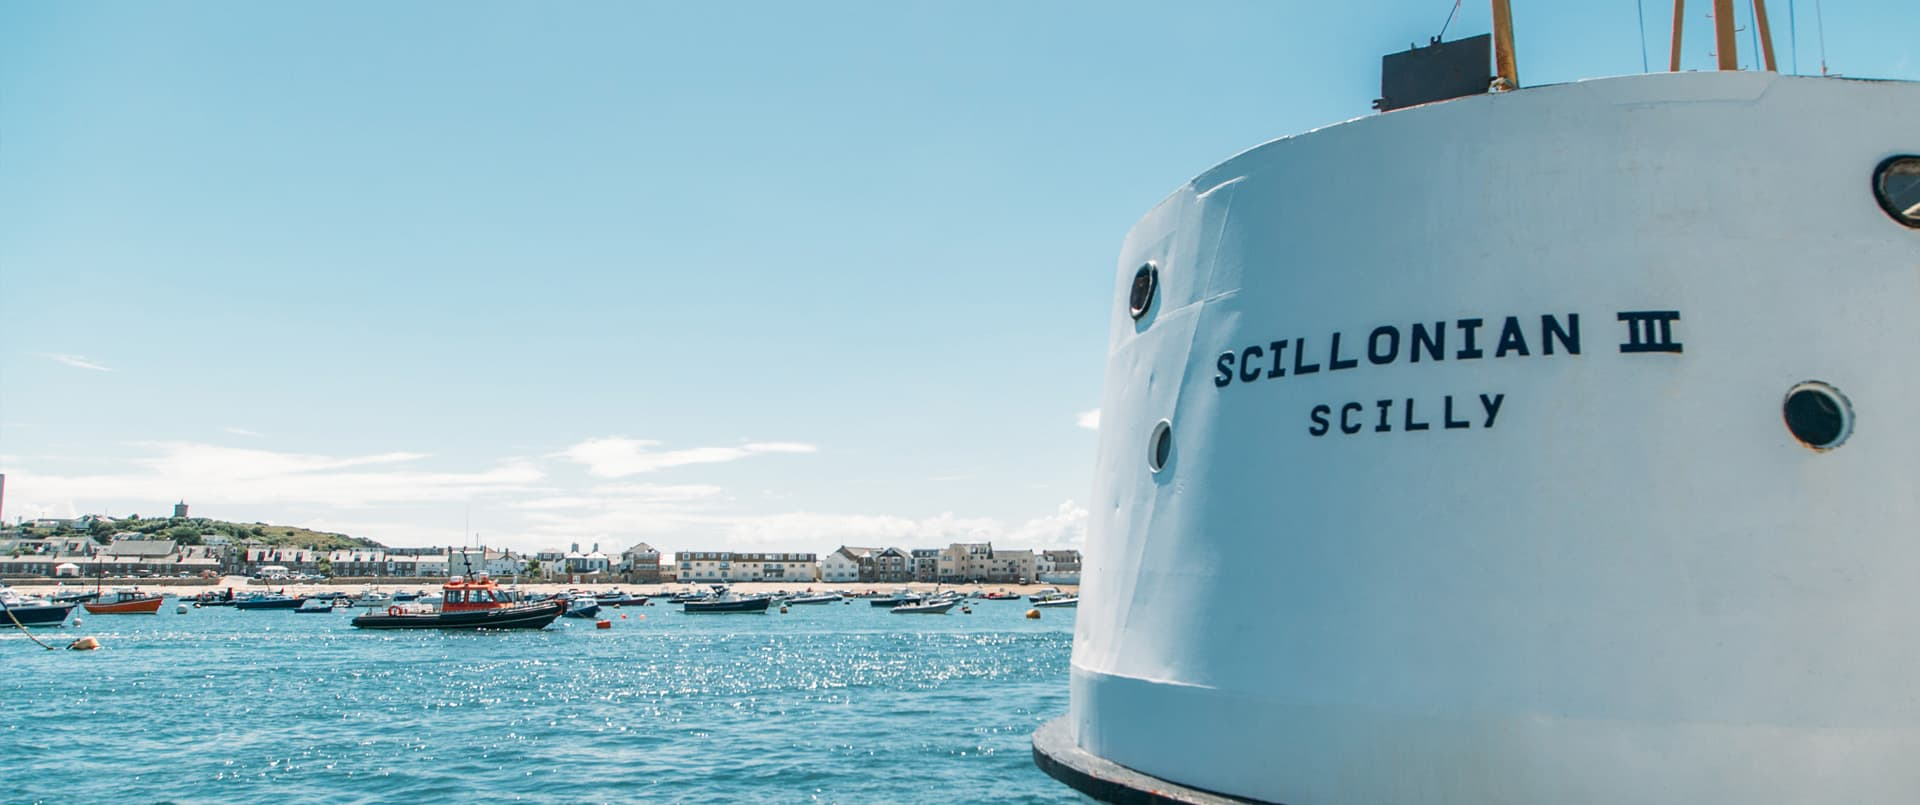 Scillonian Saturday Summer Double Sailings to the Isles of Scilly